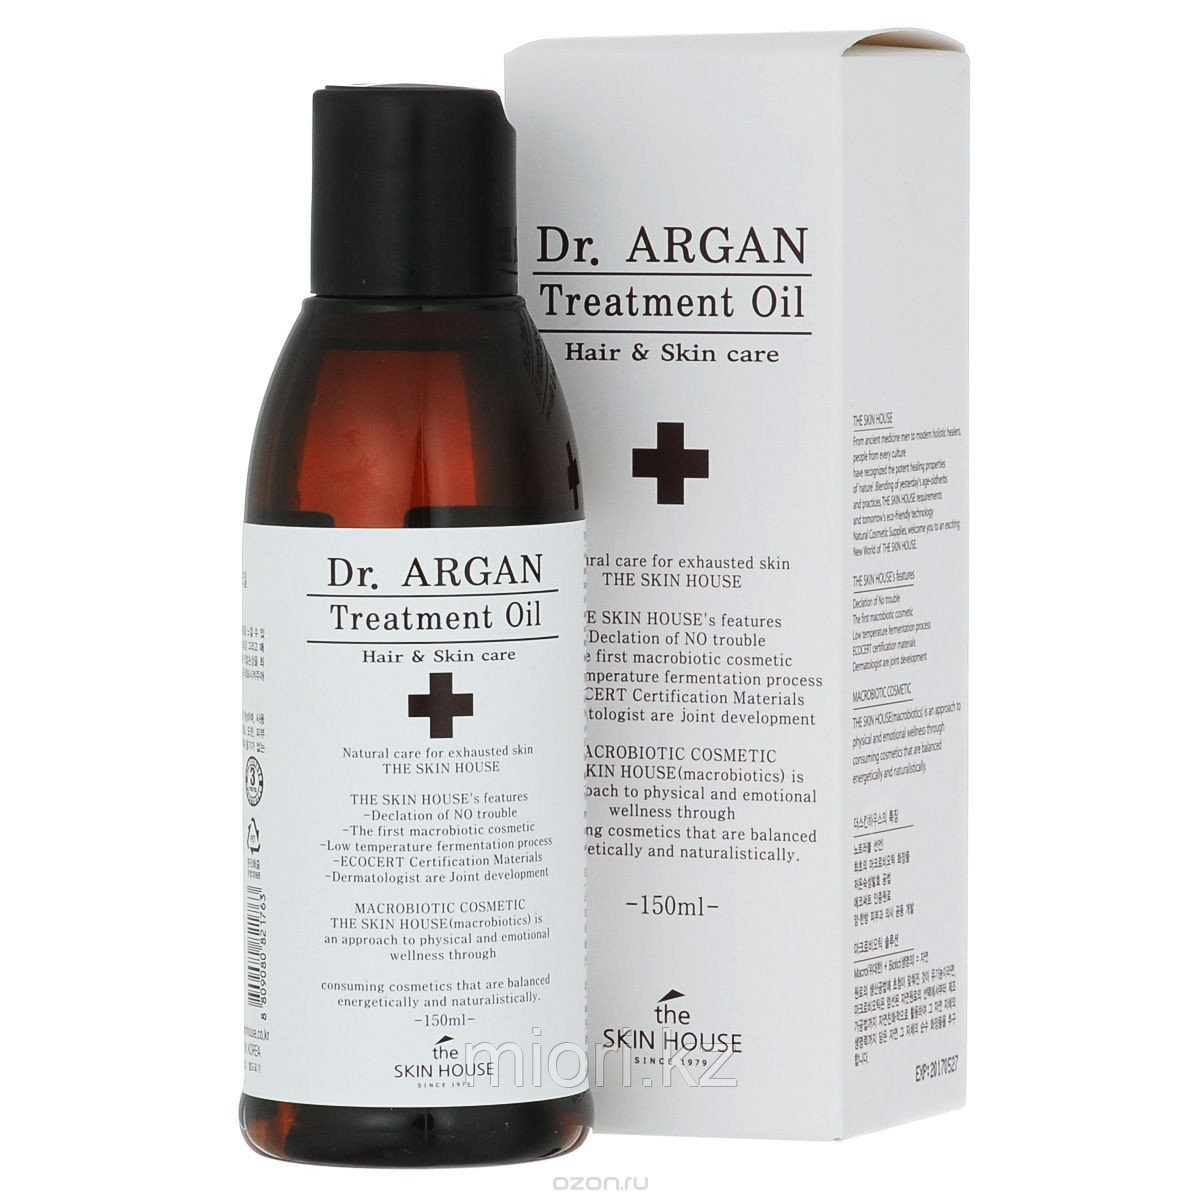 Dr. Argan Treatment Oil [TheSkinHouse]